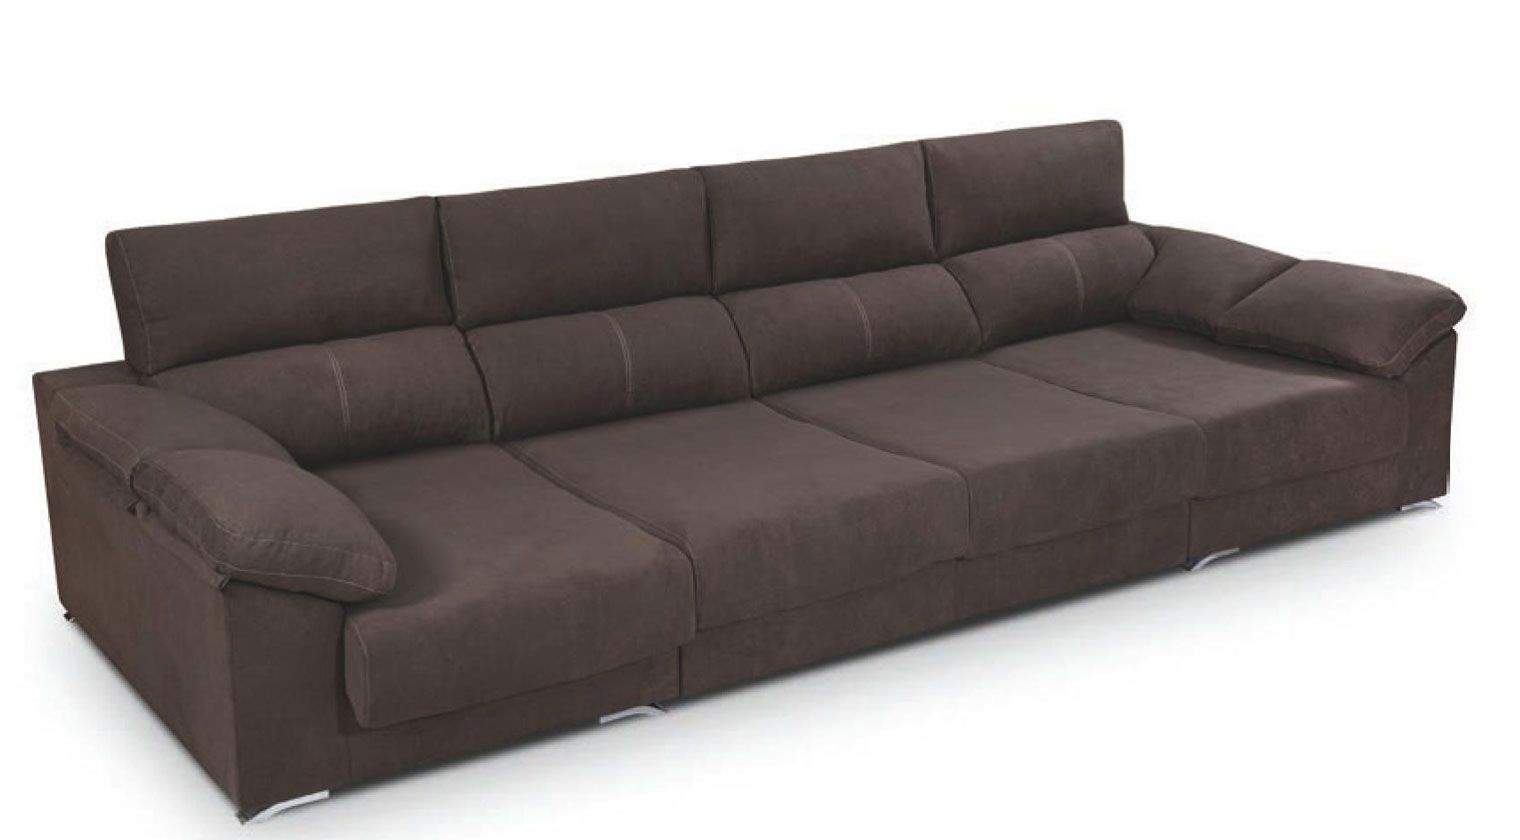 Comprar chaise longue tela lleida mod sofa 3 5 plazas for Sofas baratos asturias